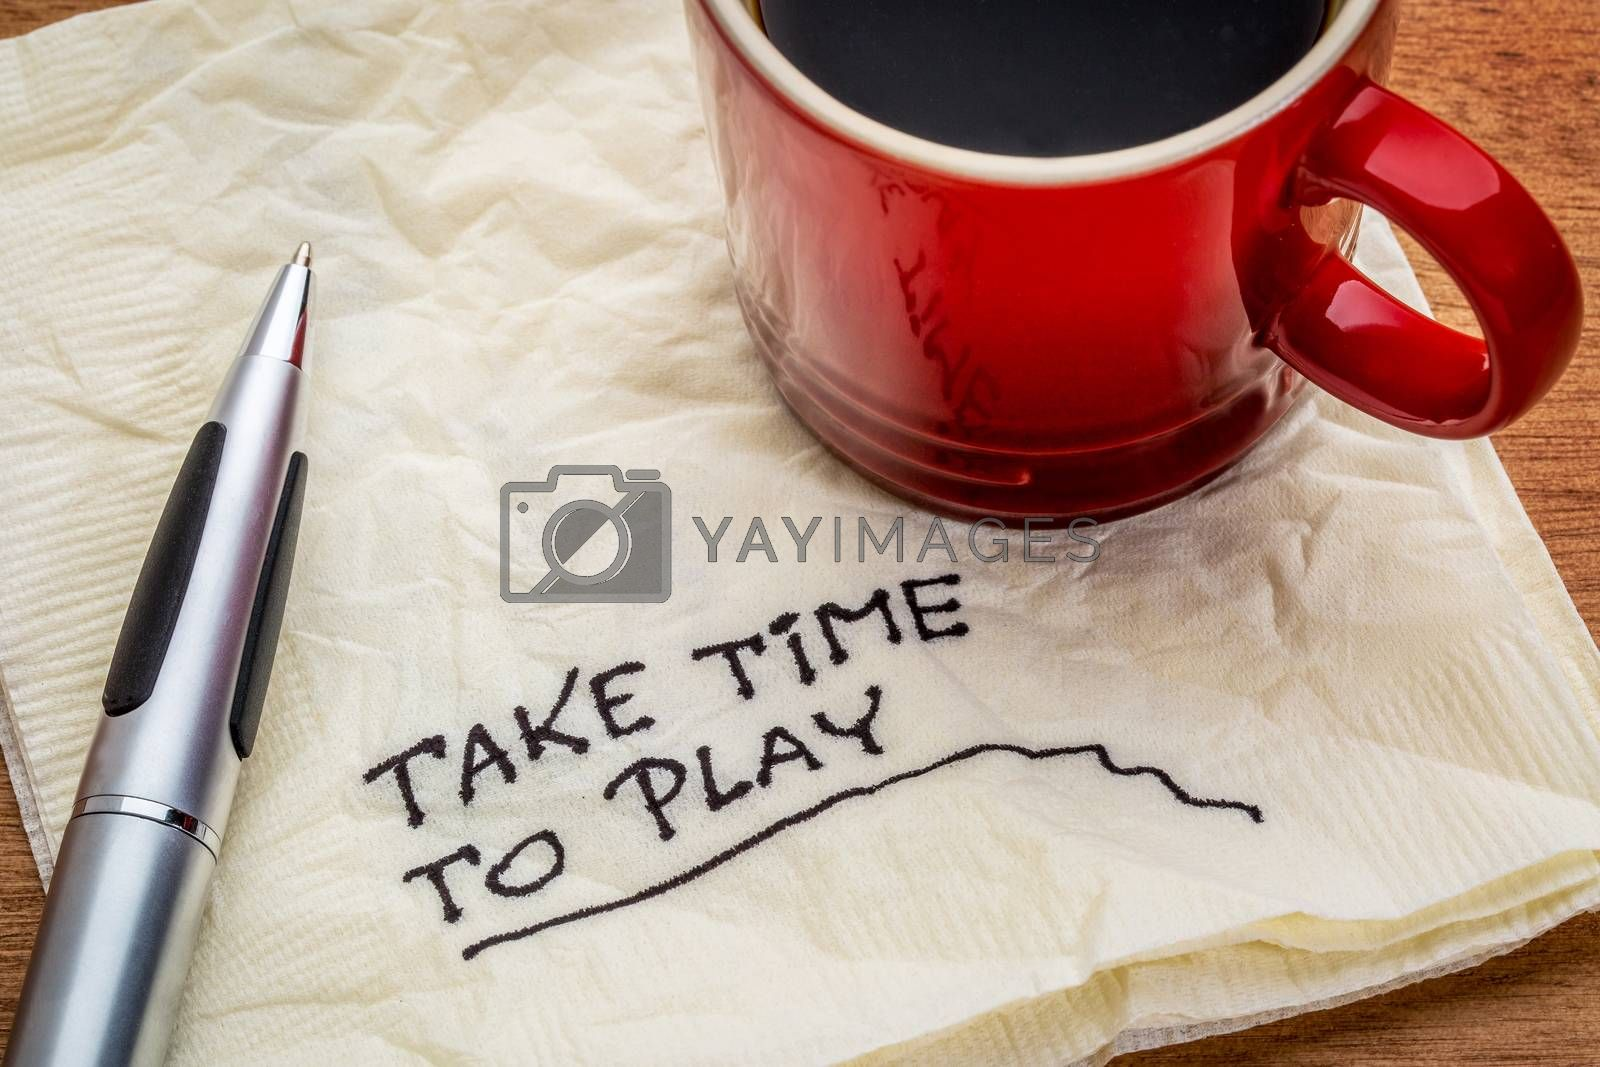 Take time to play advice on a napkin with a cup of coffee - work life balance concept